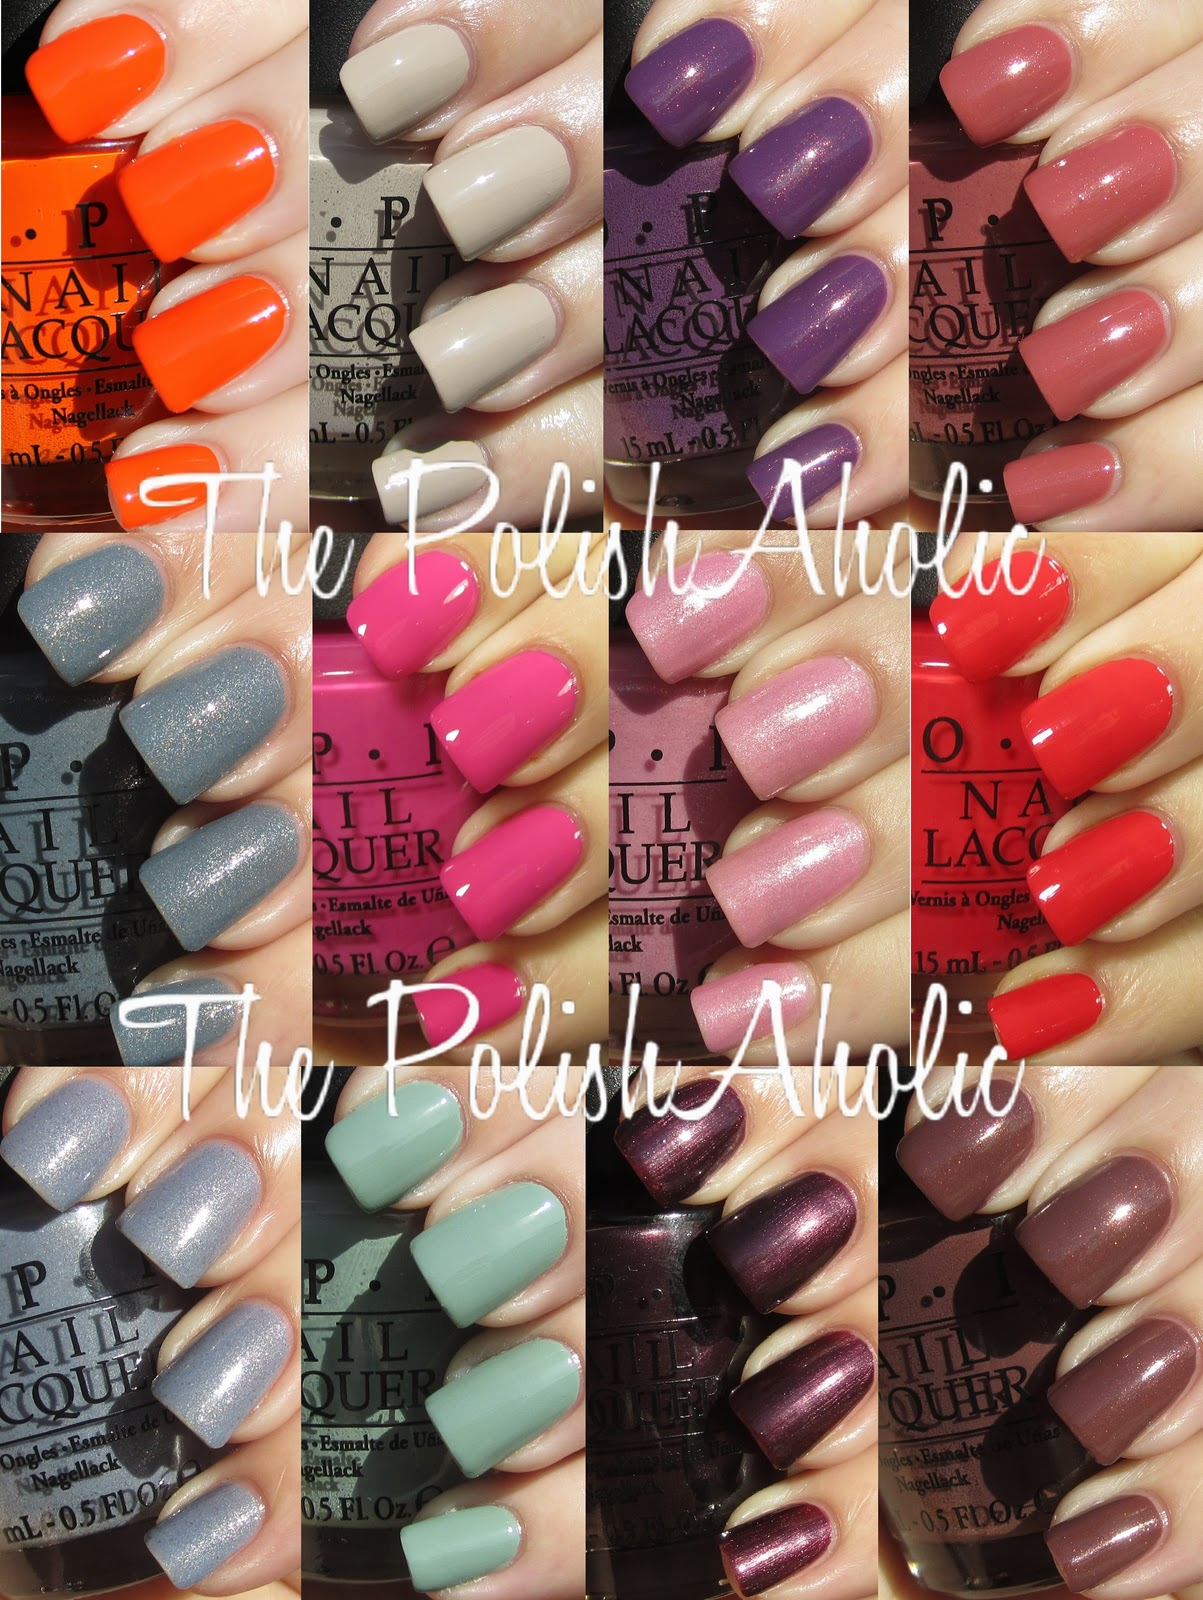 OPI Spring 2012 Holland Collection Swatches